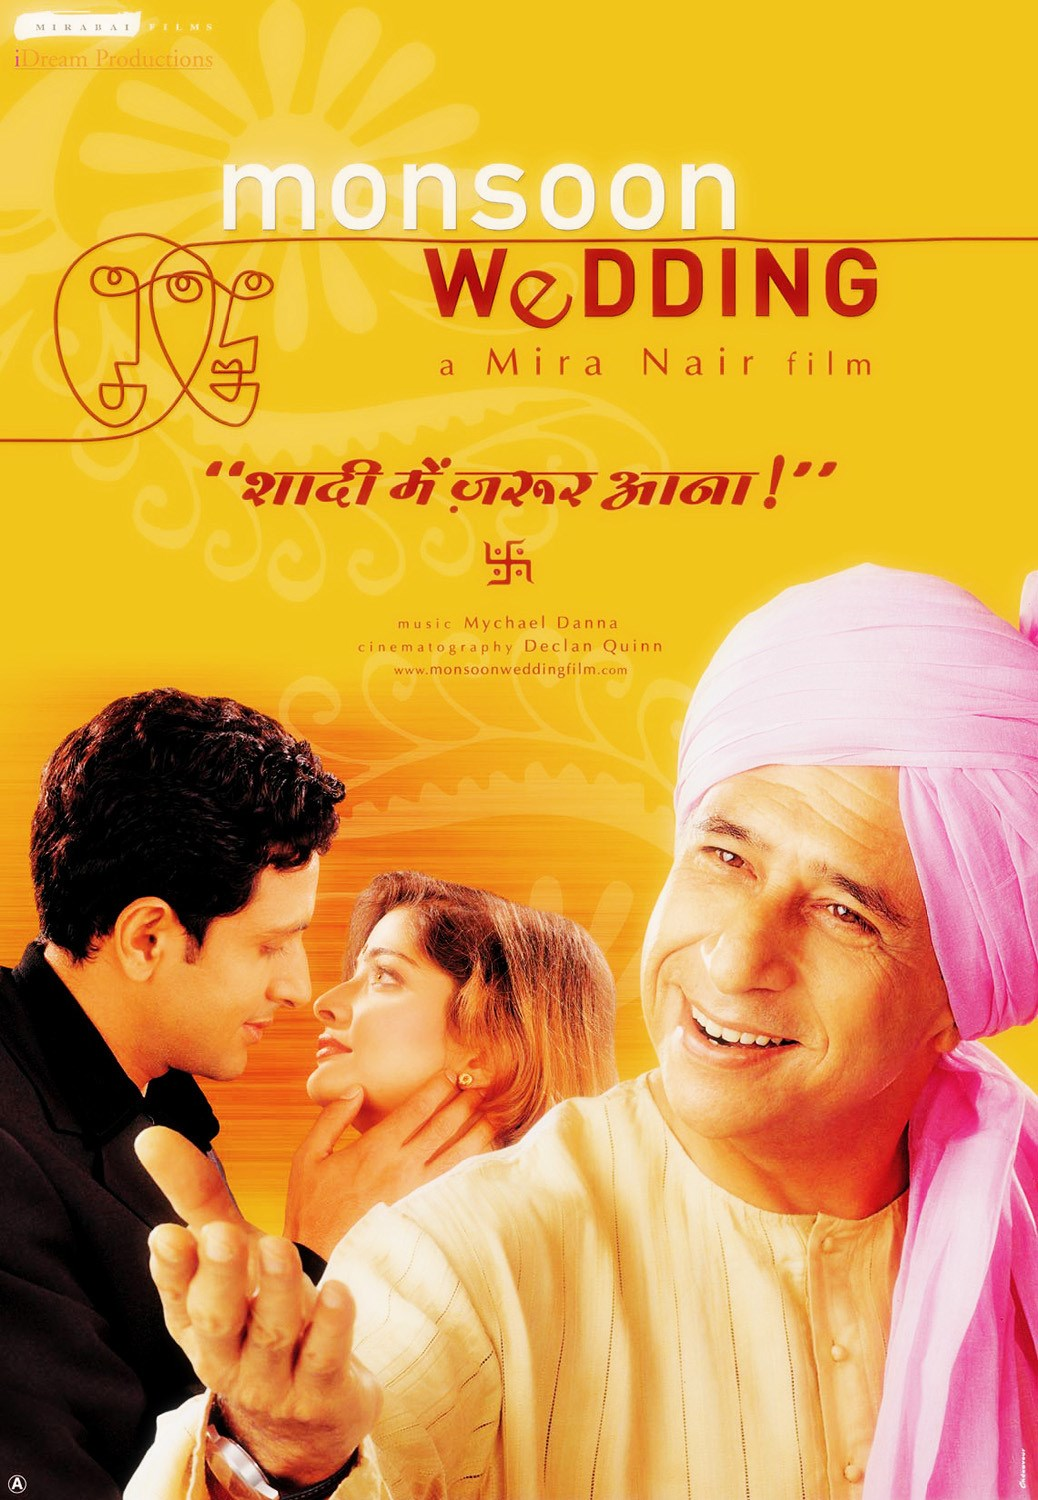 monsoon wedding film analysis Monsoon wedding, which came out in in a film swarming with characters from the credits may even notice that one assistant director rejoices in the first name.